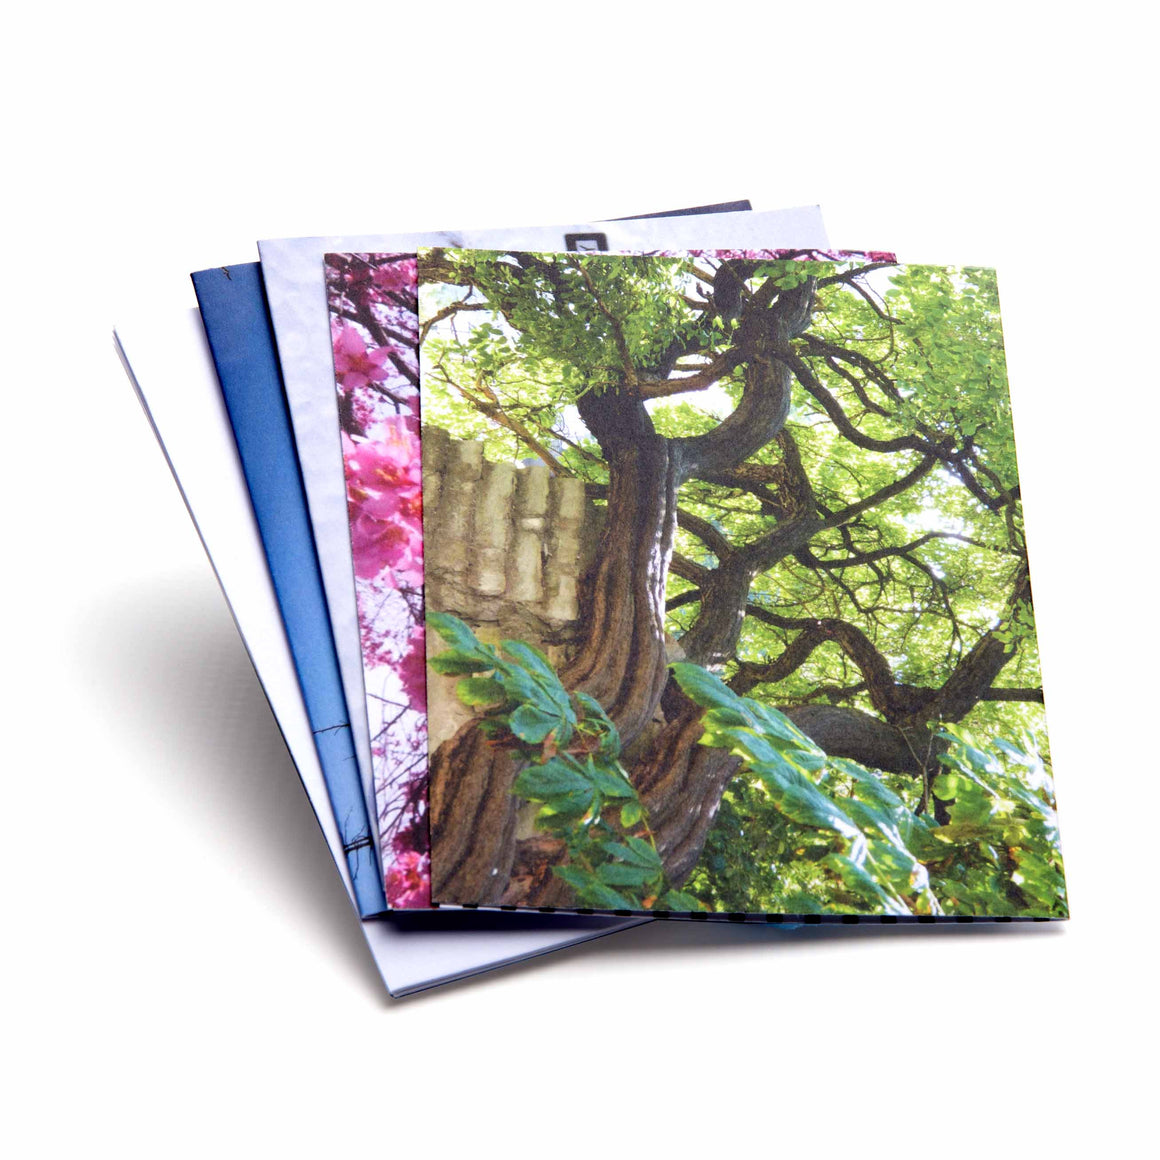 Greeting Cards with Envelopes product image - included with Dr. Don's Care Packages Get Well Soon Care Package.